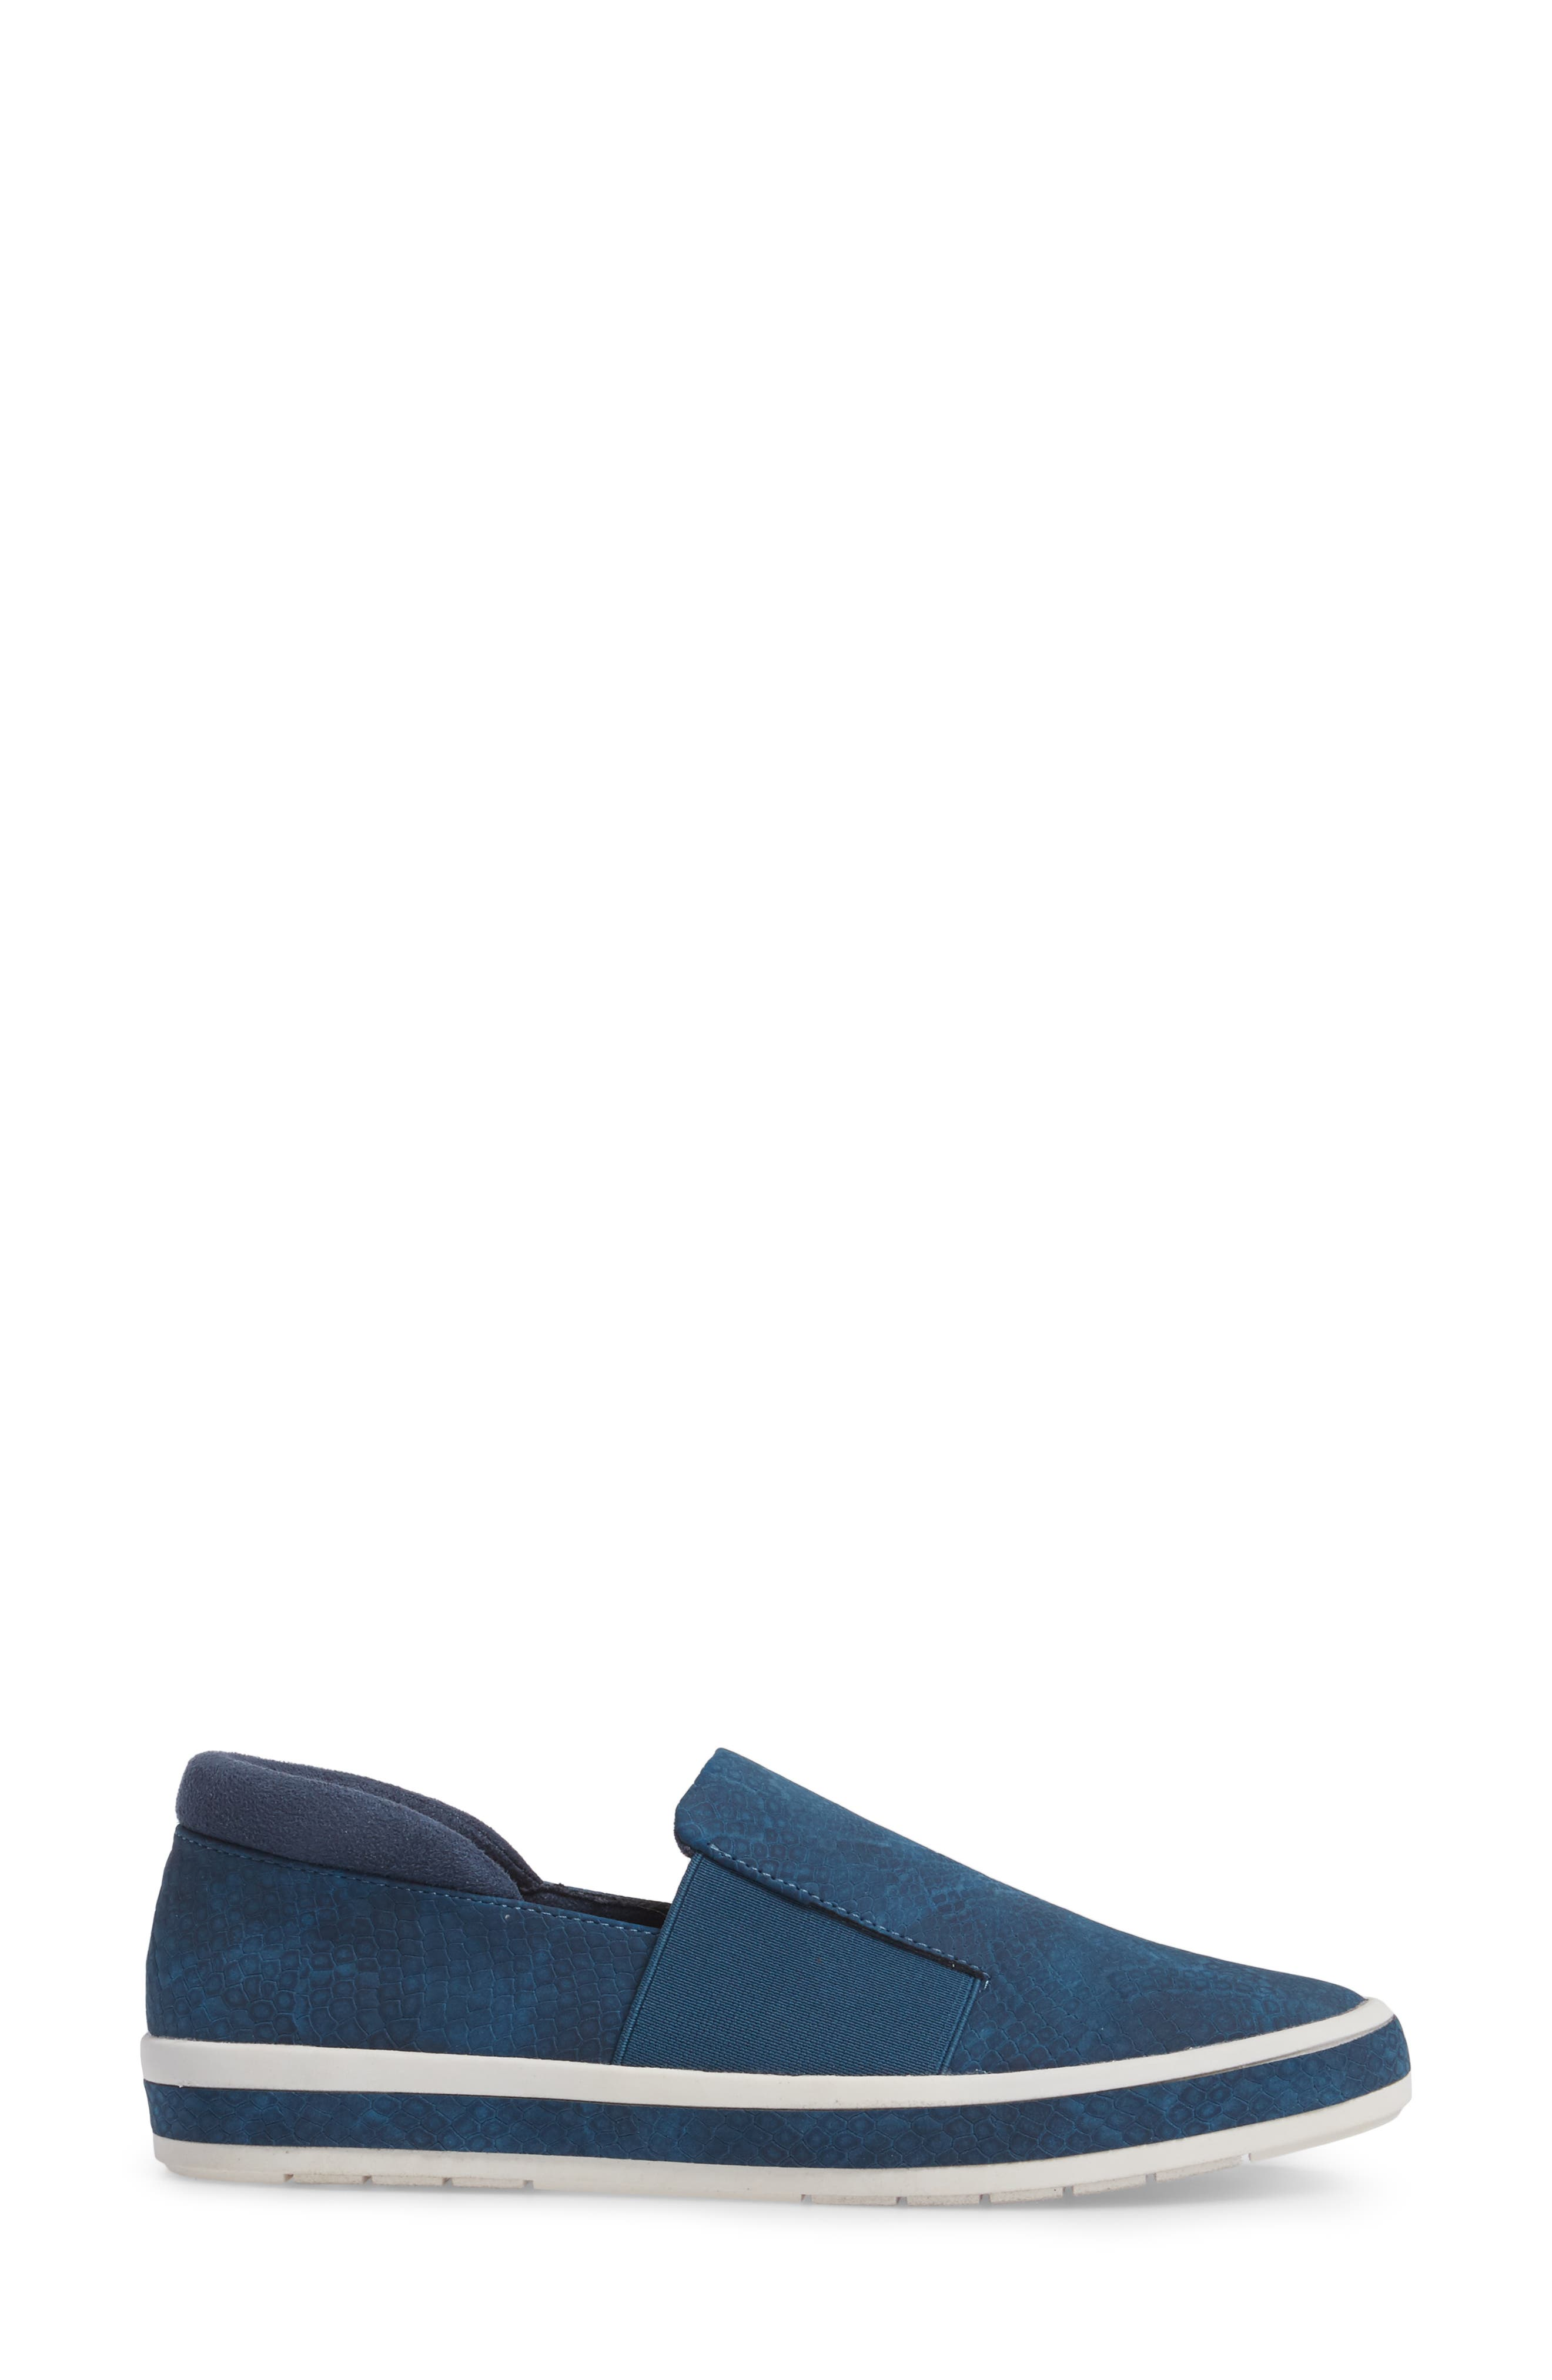 Switch II Slip-On Sneaker,                             Alternate thumbnail 3, color,                             NAVY PRINTED LEATHER